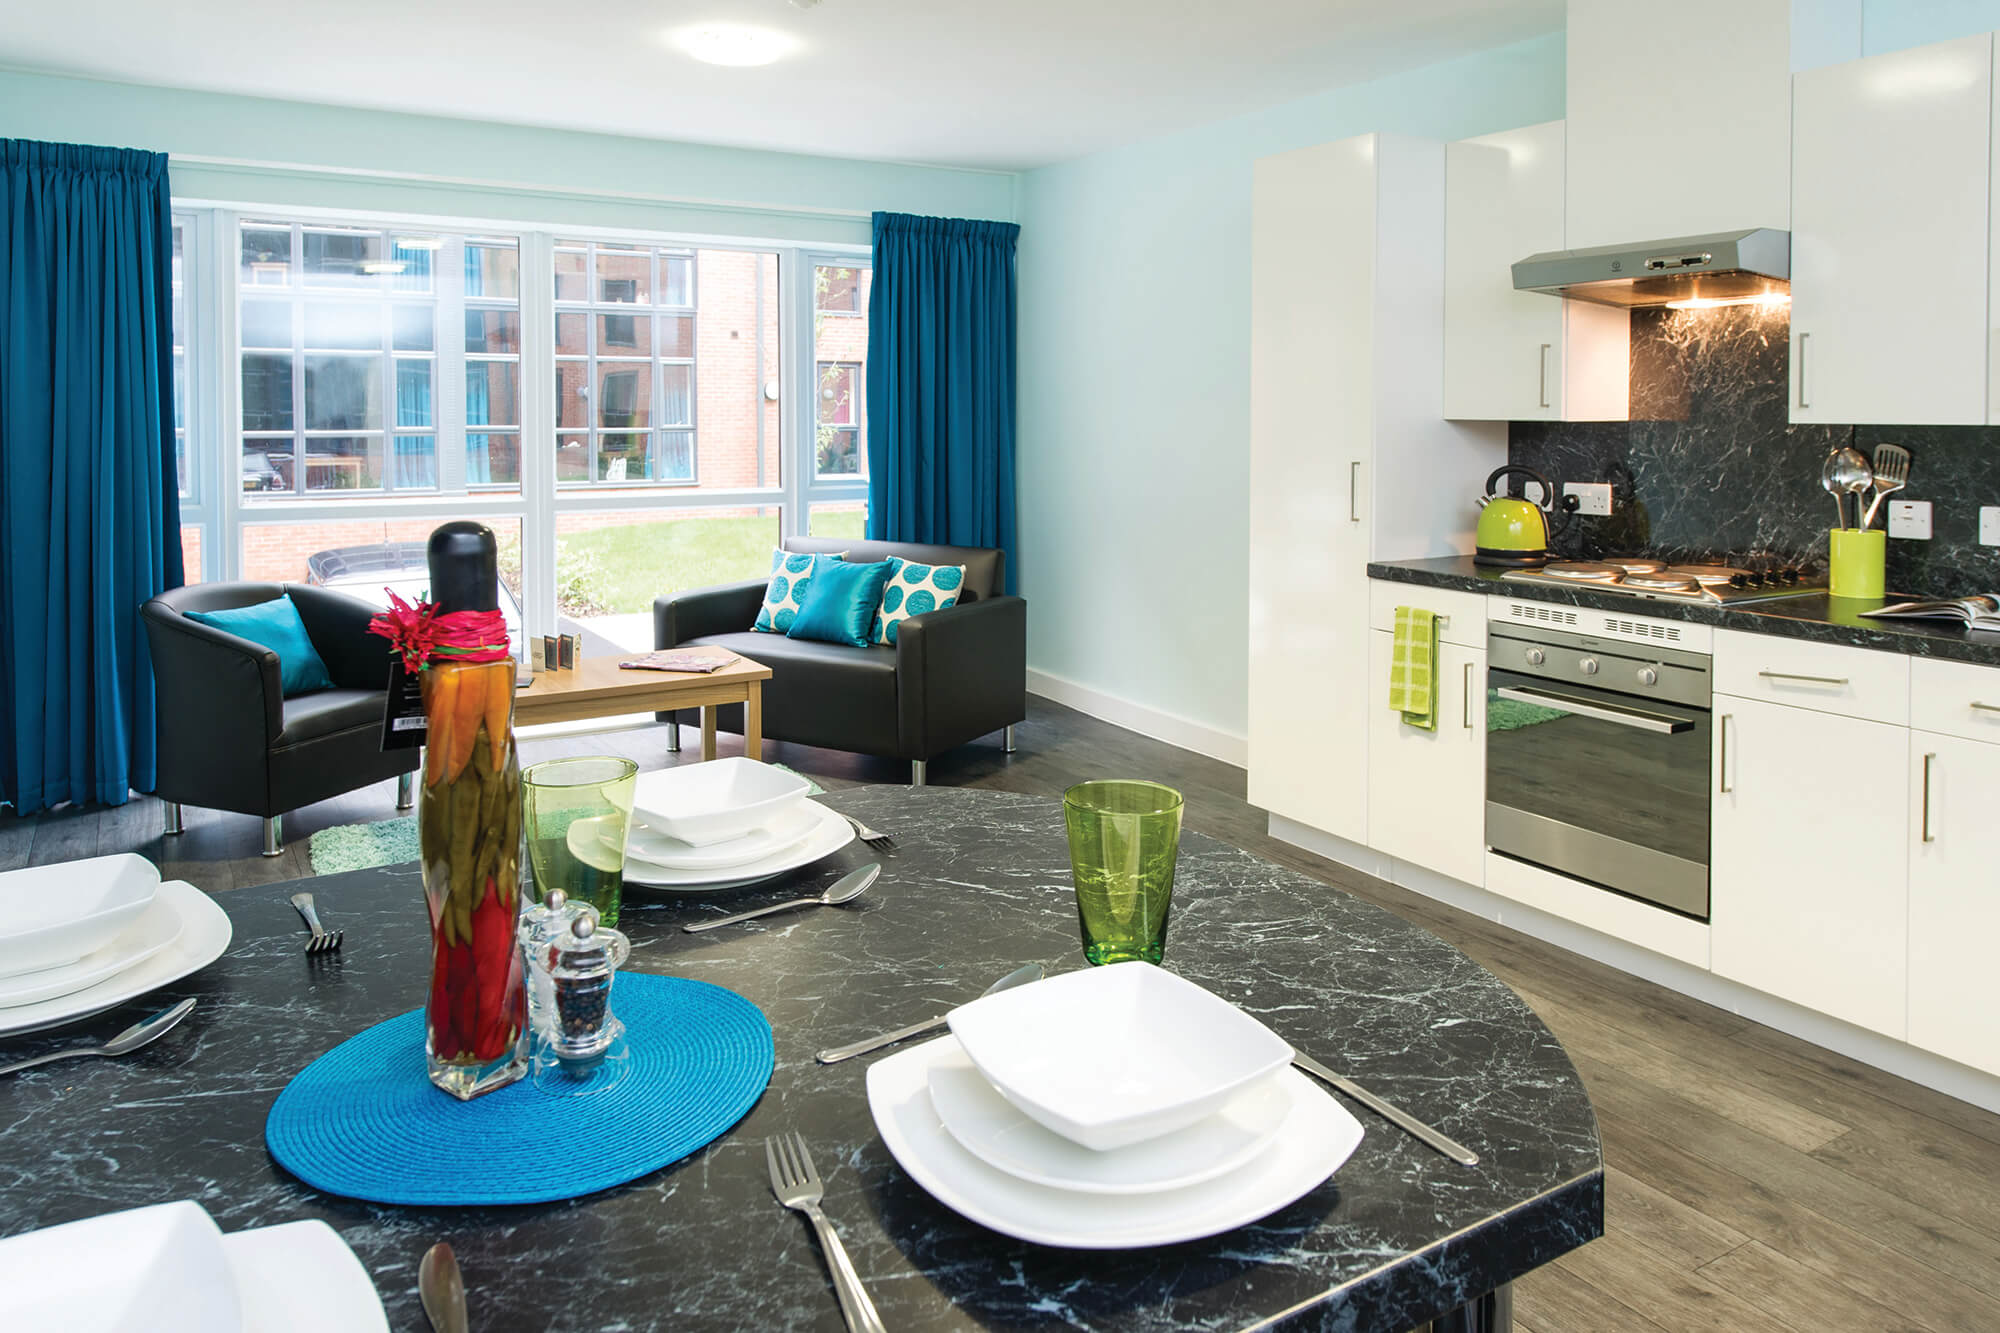 A kitchen and social space at Darley Bank